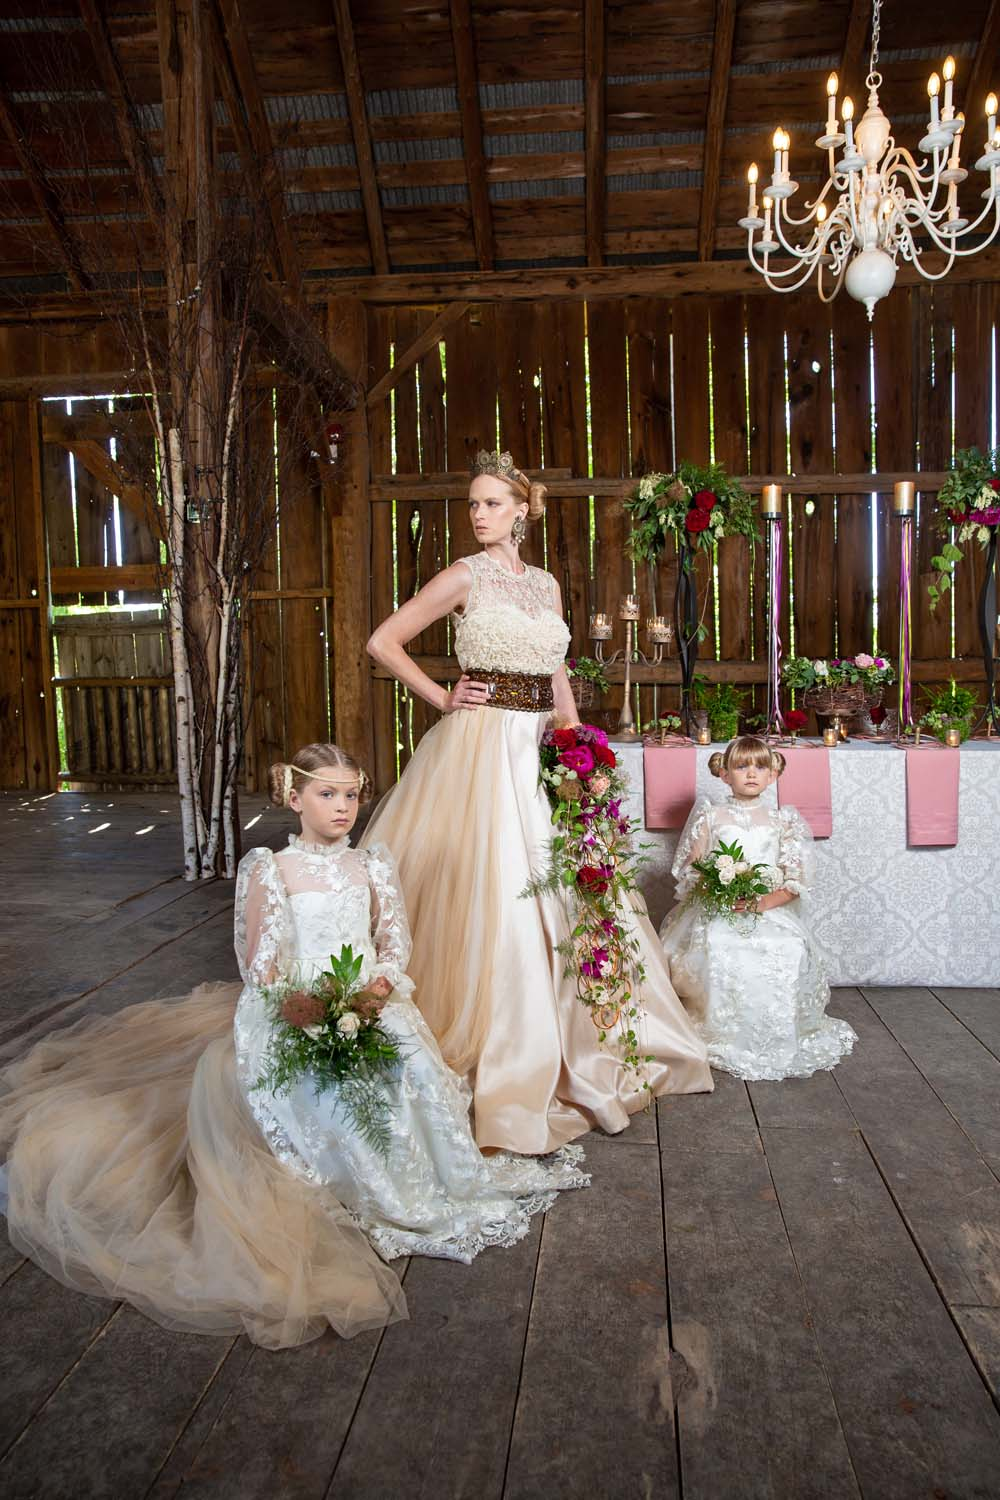 This Styled Shoot Was Inspired By Medieval Royalty - Bridal Party